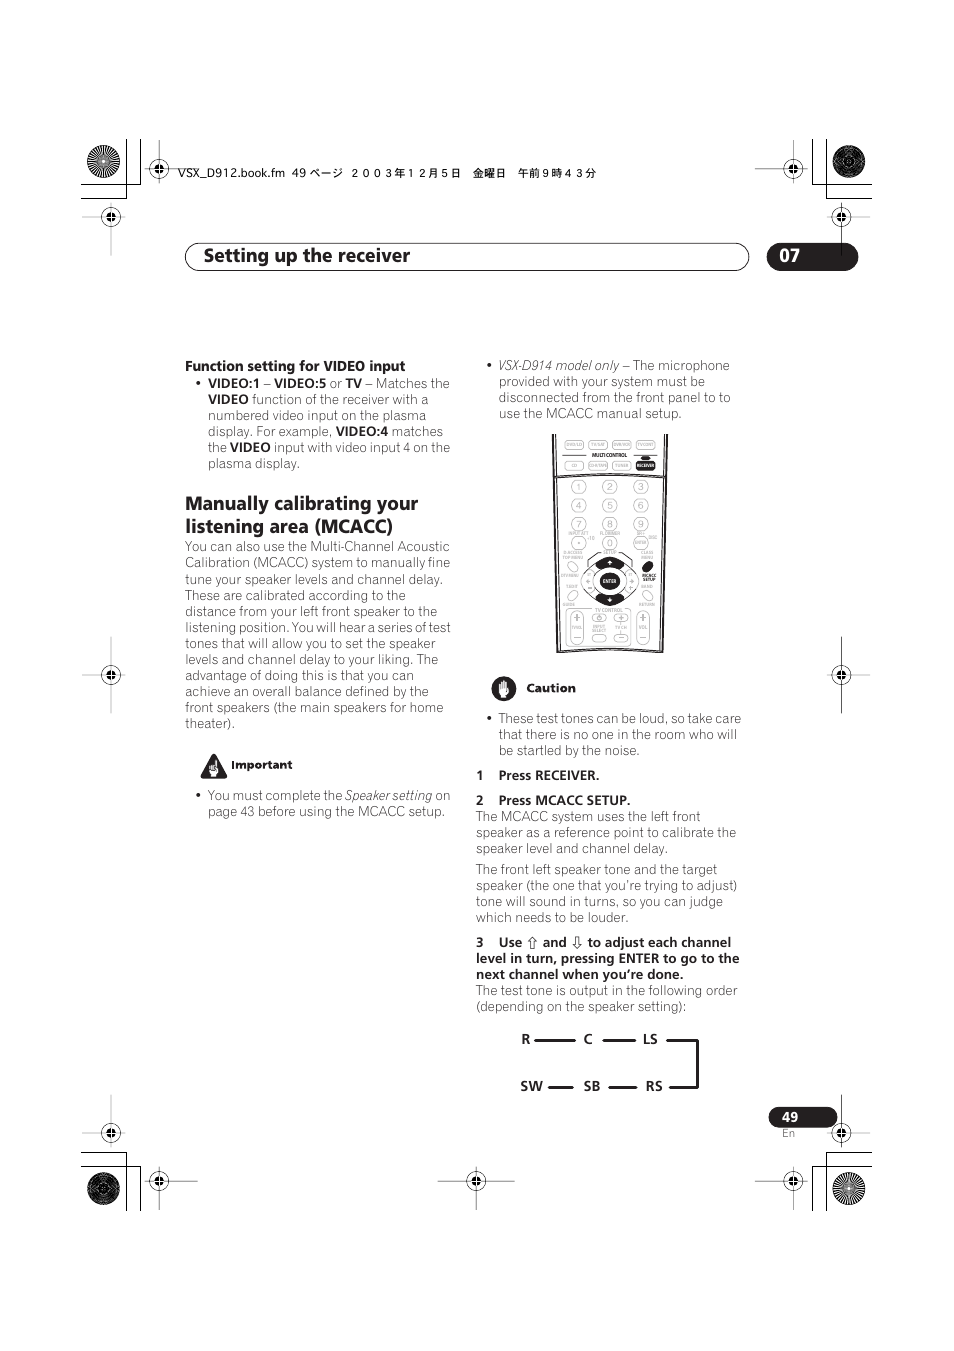 Manually calibrating your listening area (mcacc), Setting up the receiver  07 | Pioneer VSX-D914 User Manual | Page 49 / 71